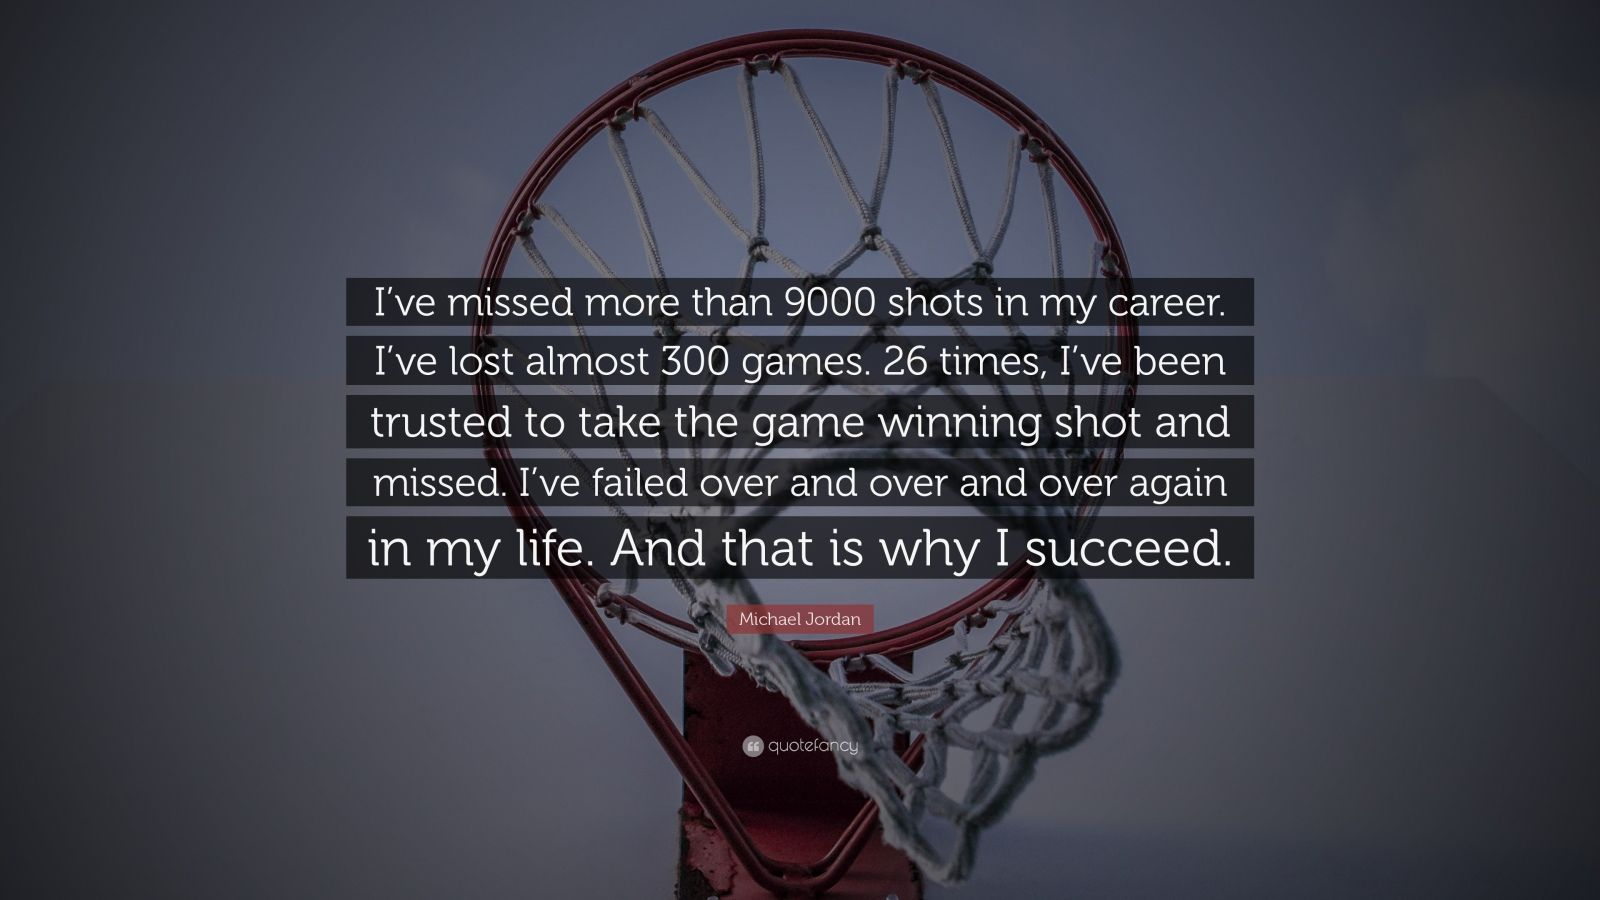 "Michael Jordan Quote: ""I've missed more than 9000 shots in my career. I've lost almost 300 games. 26 times, I've been trusted to take the game winning shot and missed. I've failed over and over and over again in my life. And that is why I succeed."""